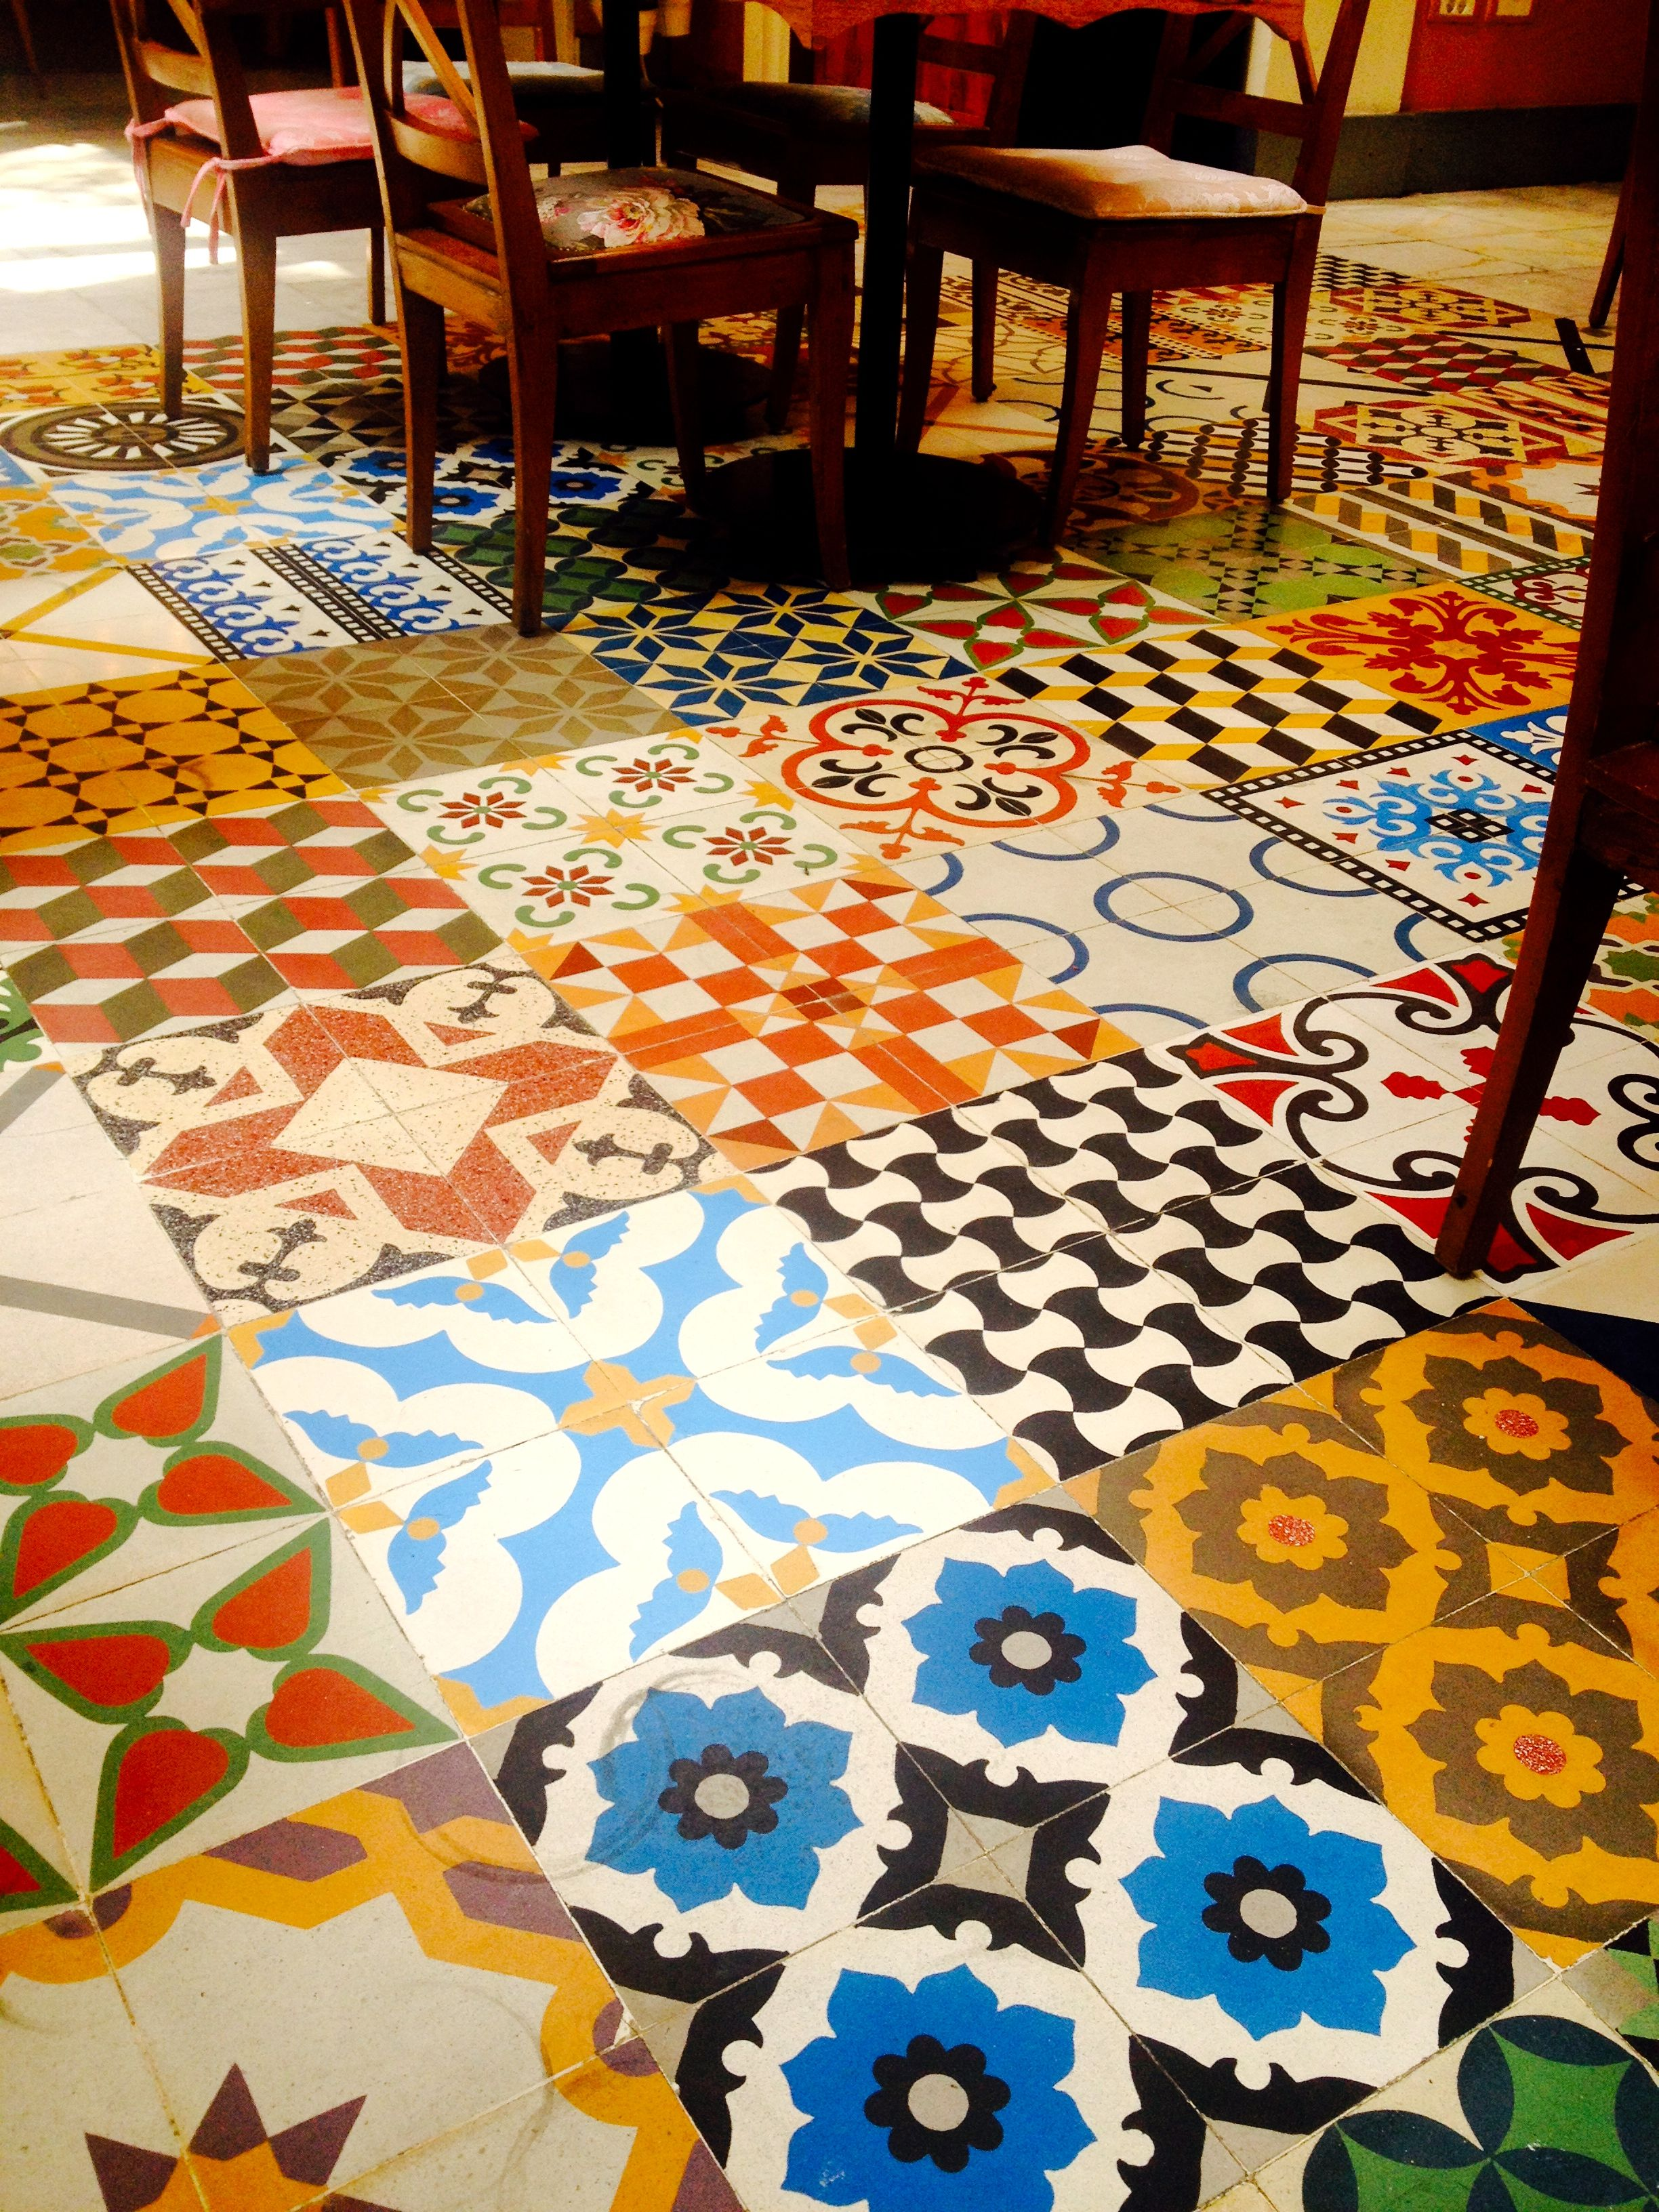 Beautiful Tiled Floor Of Enab A Lebanese Restaurant In Mar Mikhael Beirut